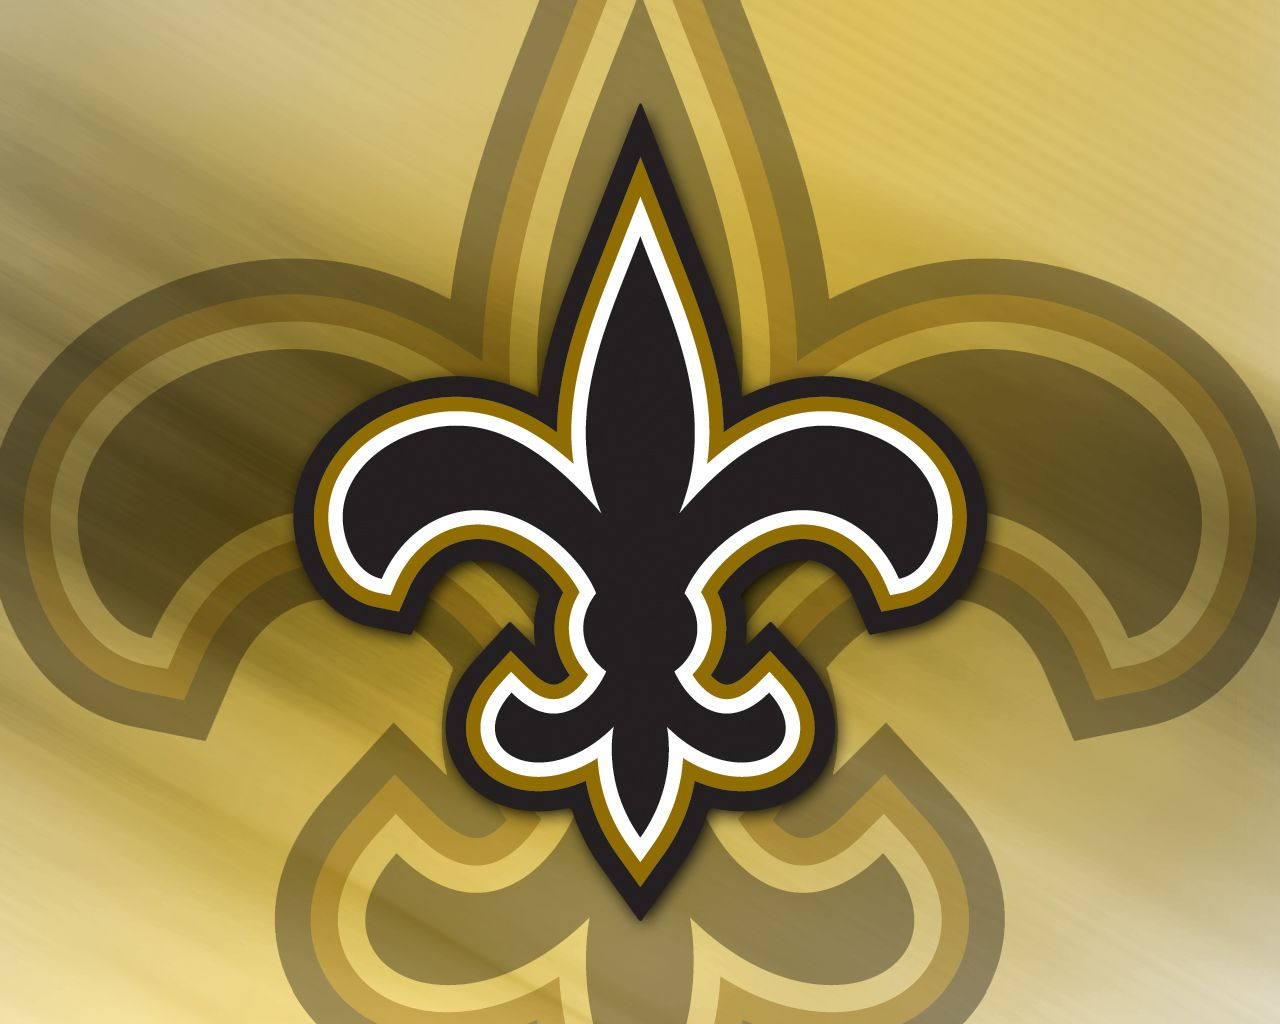 New orleans saints wallpapers for hd wallpapers - New orleans saints wallpaper ...